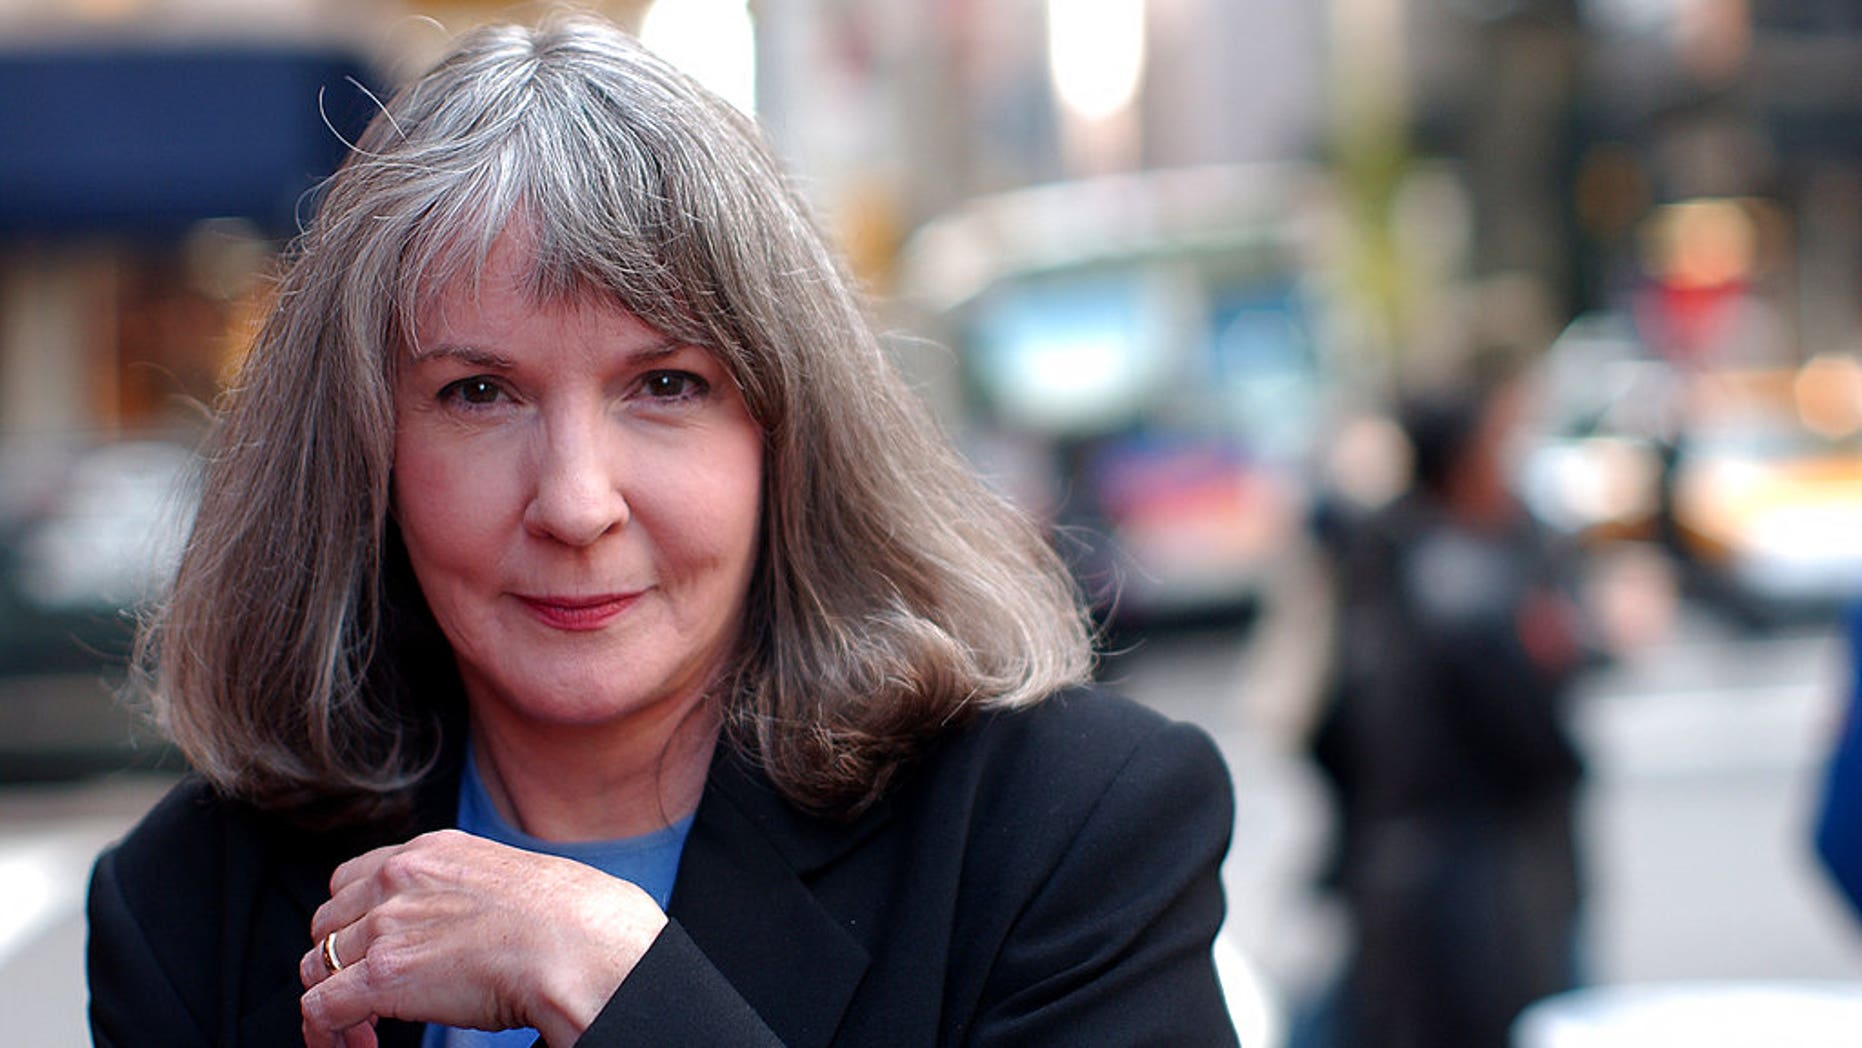 Sue Grafton died on Dec. 28 at the age of 77.